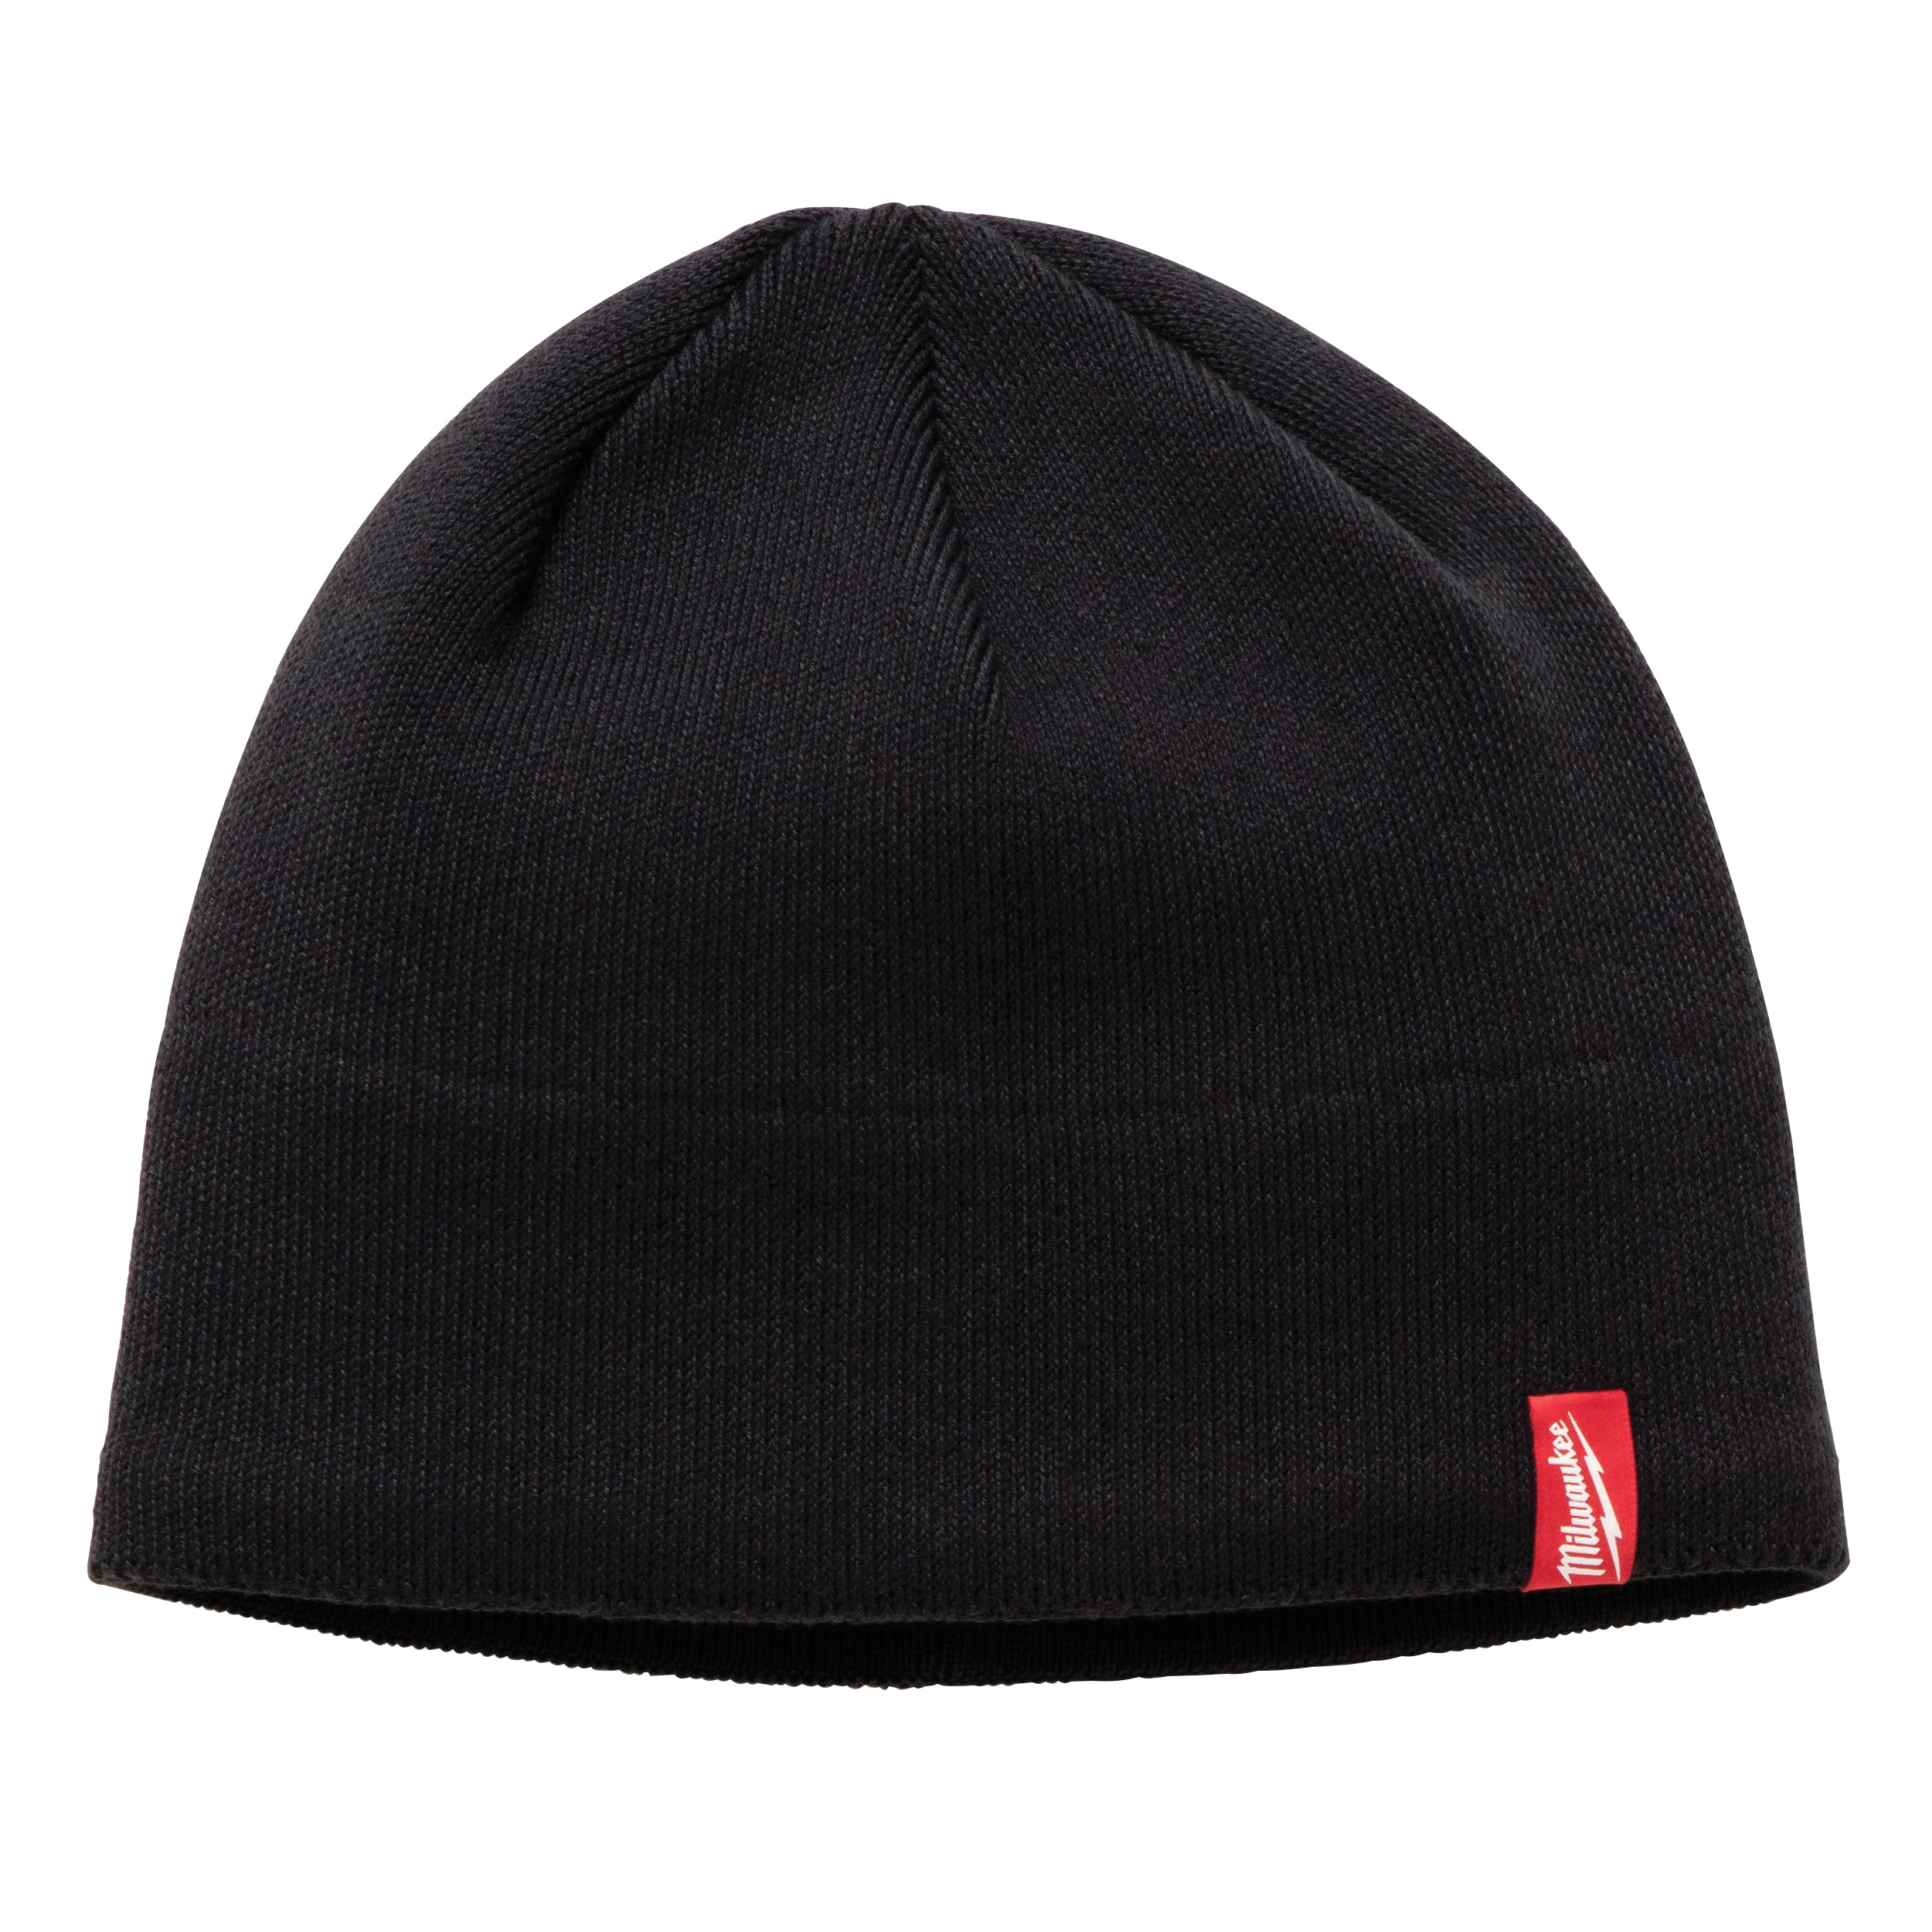 Milwaukee® 502B Insulated Wind/Water-Resistant Knit Hat Fleece Lined Knit Hat, Universal, Black, Fleece Lined Polyester, Pull Over Closure